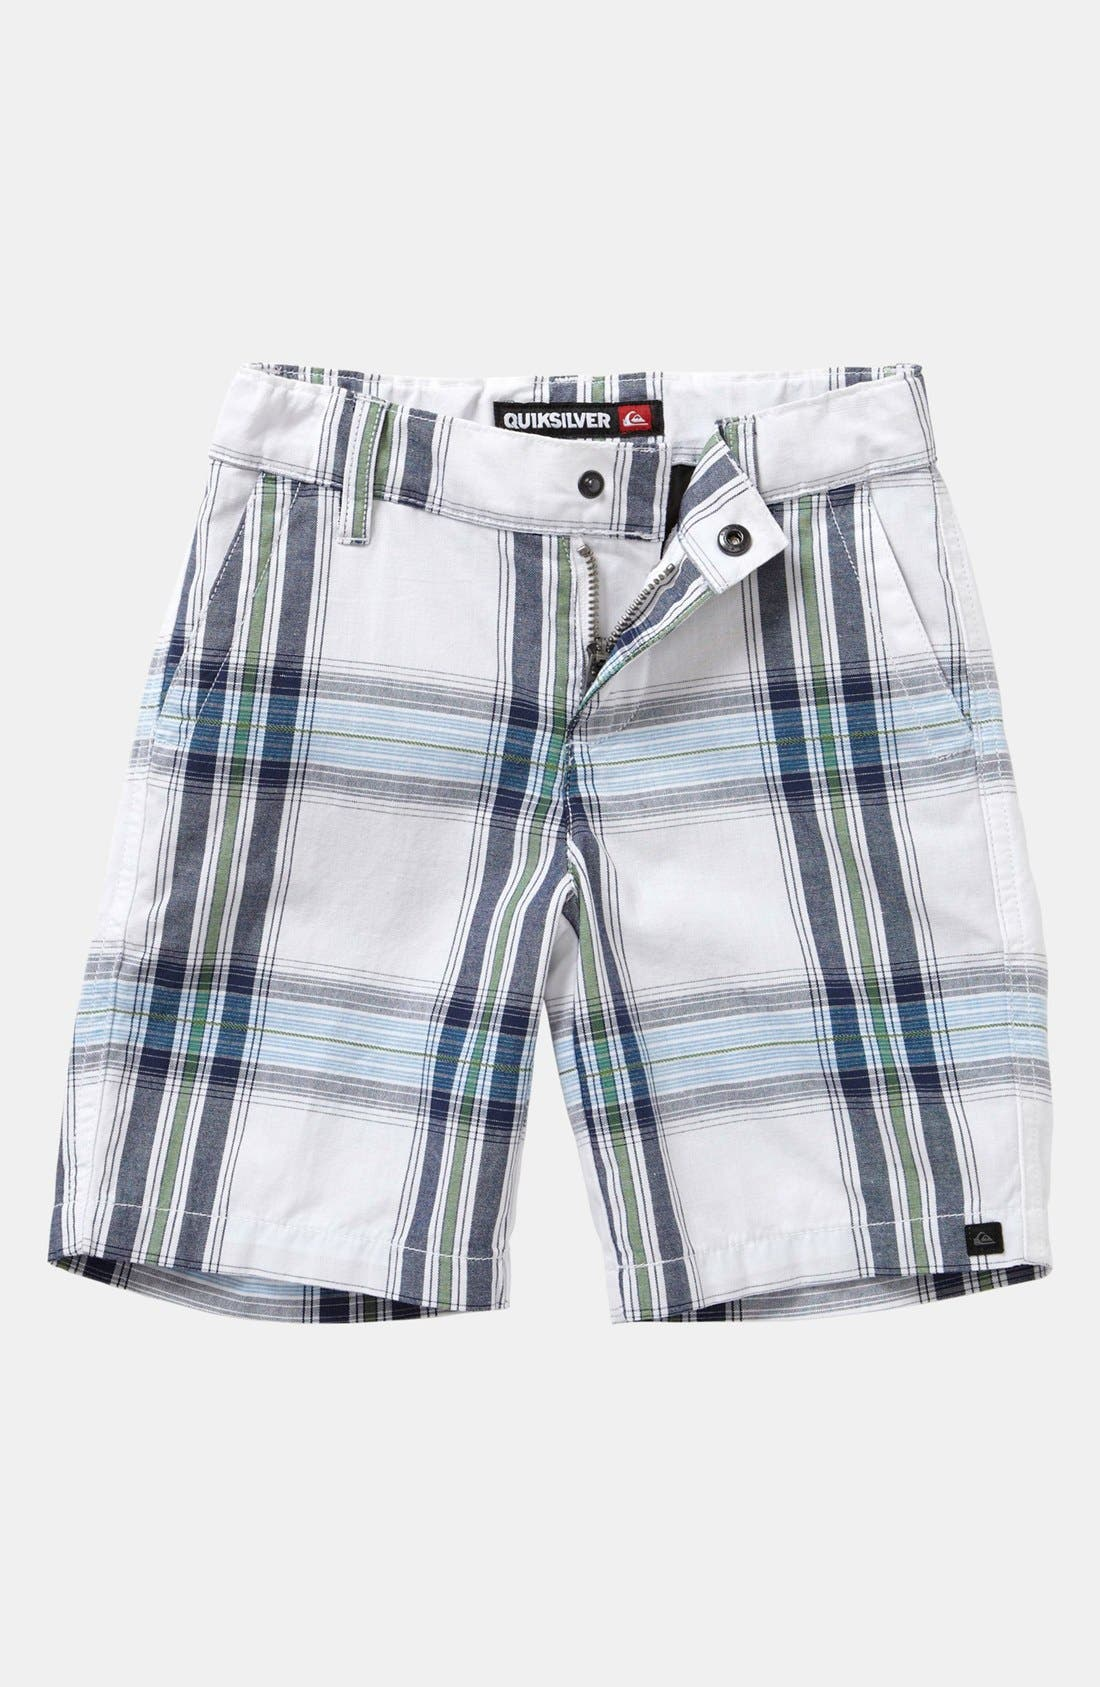 Alternate Image 1 Selected - Quiksilver 'Outstanding' Plaid Shorts (Toddler Boys)